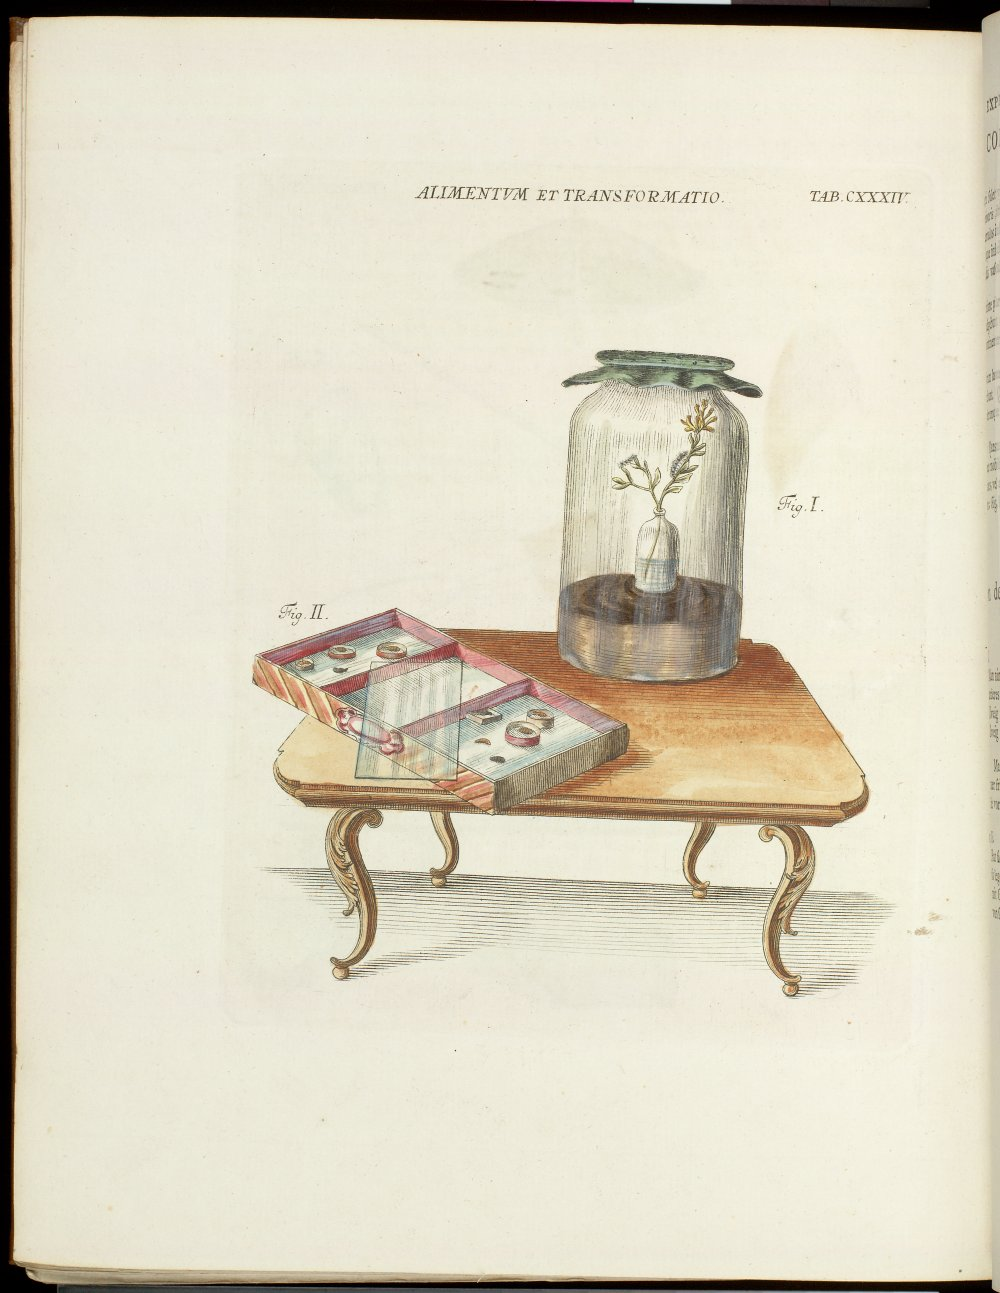 Tab. CXXXIV : Jar & drawer on table,  Image number:SIL21-03-003